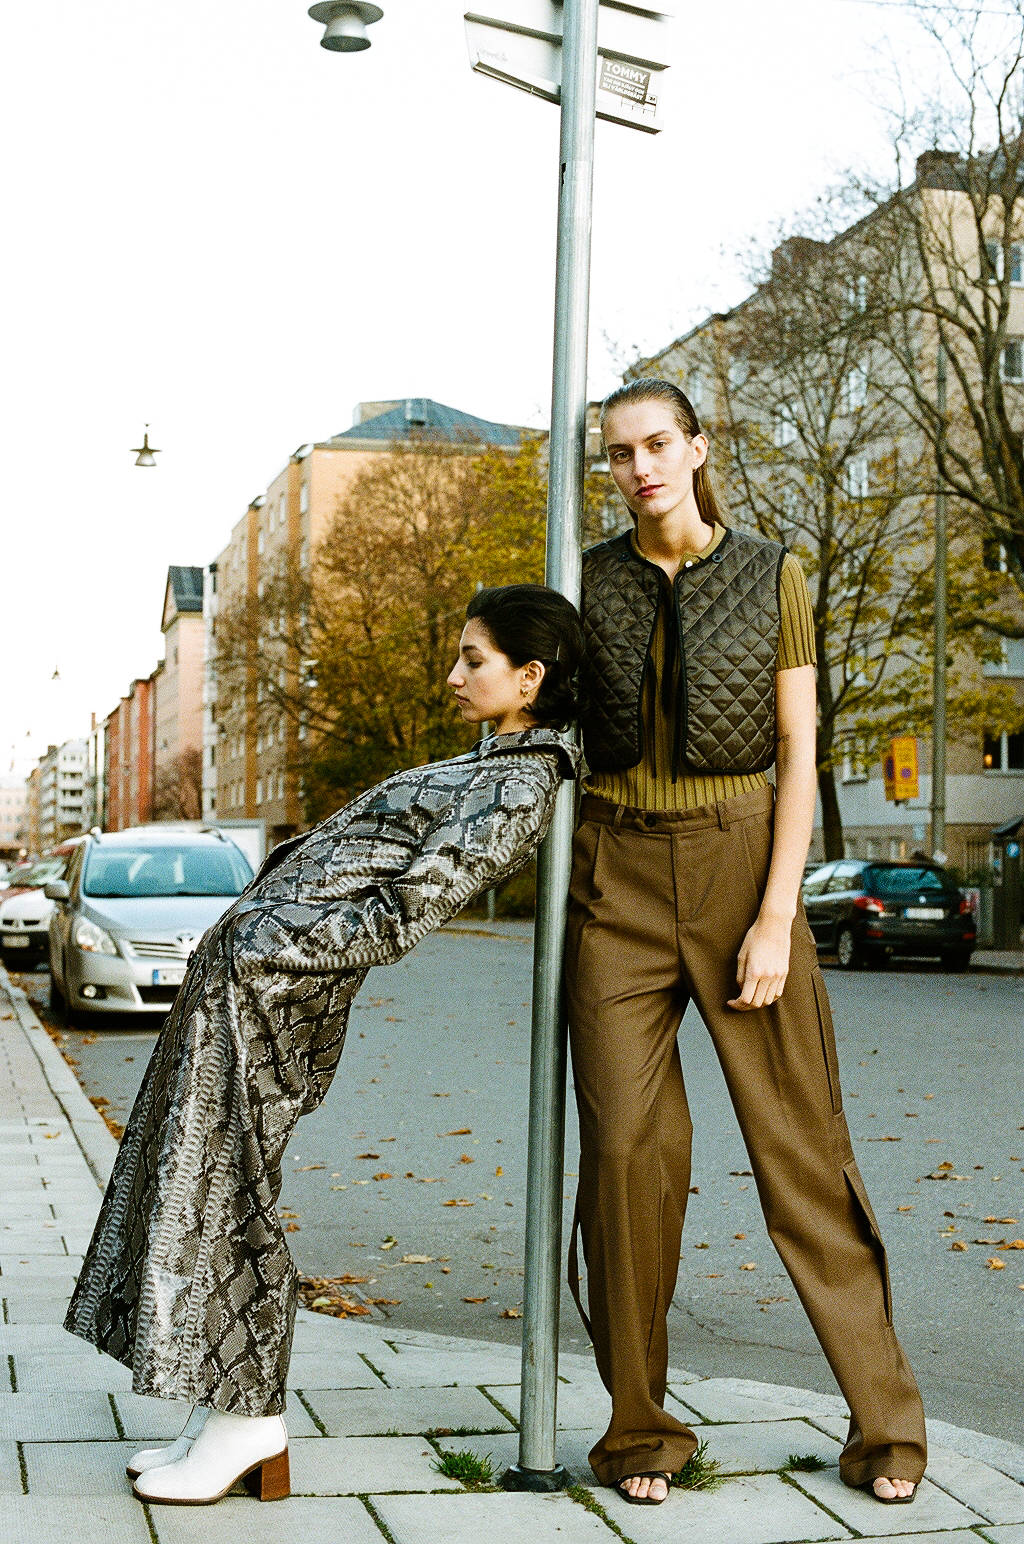 Us Fashion Editorial by Sarah Tahon & Amanda Ljungkvist